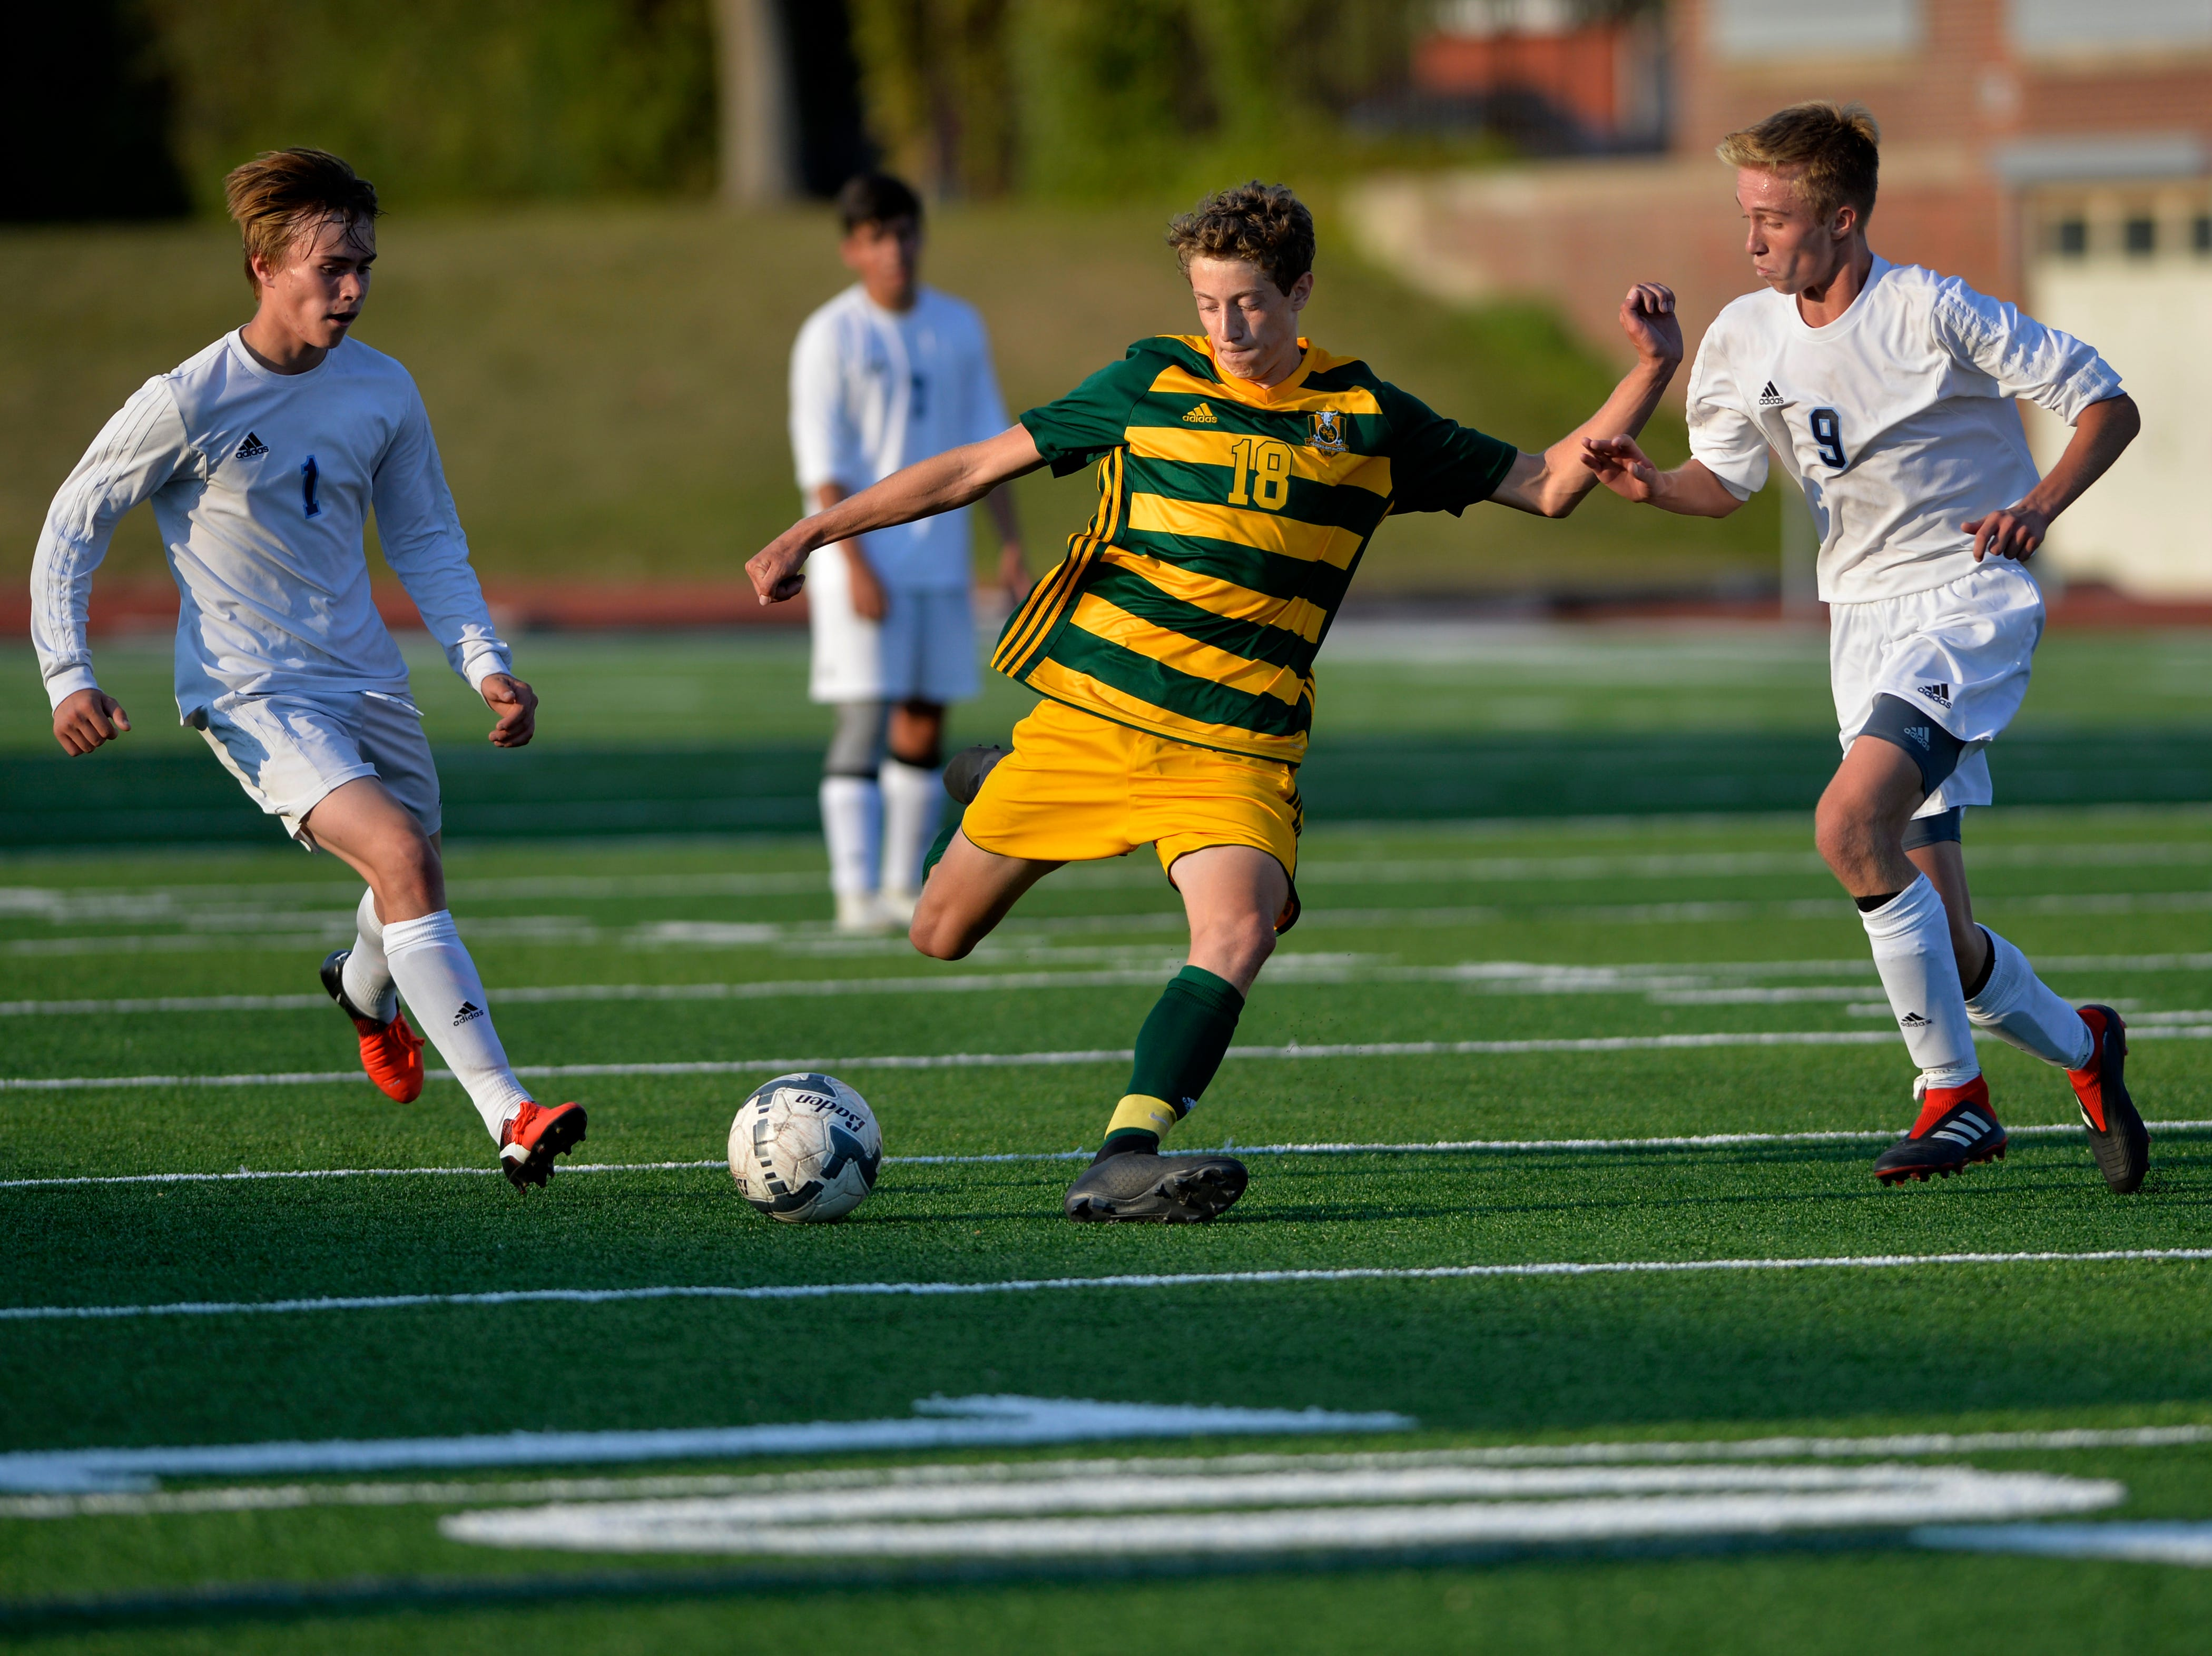 CMR's Statton Bohl, 18, makes a pass as Great Falls High's Trevin Smith, 1, and Gavin Groshelle, 9,  defend during the crosstown soccer match at Memorial Stadium, Thursday, Sept. 6, 2018.